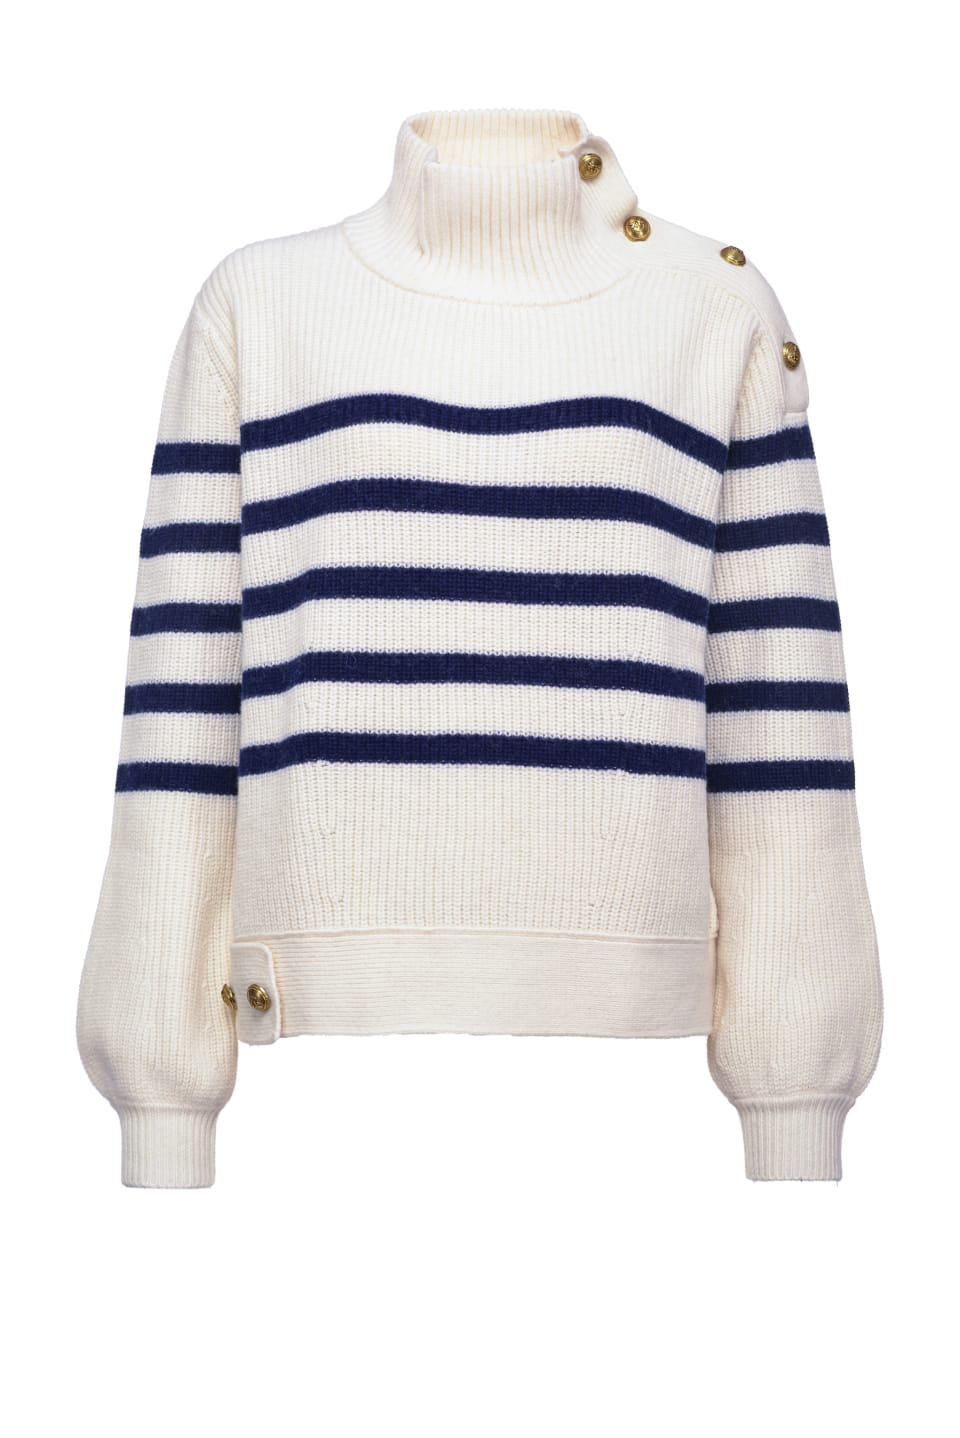 Sailor pullover with gold buttons - Pinko